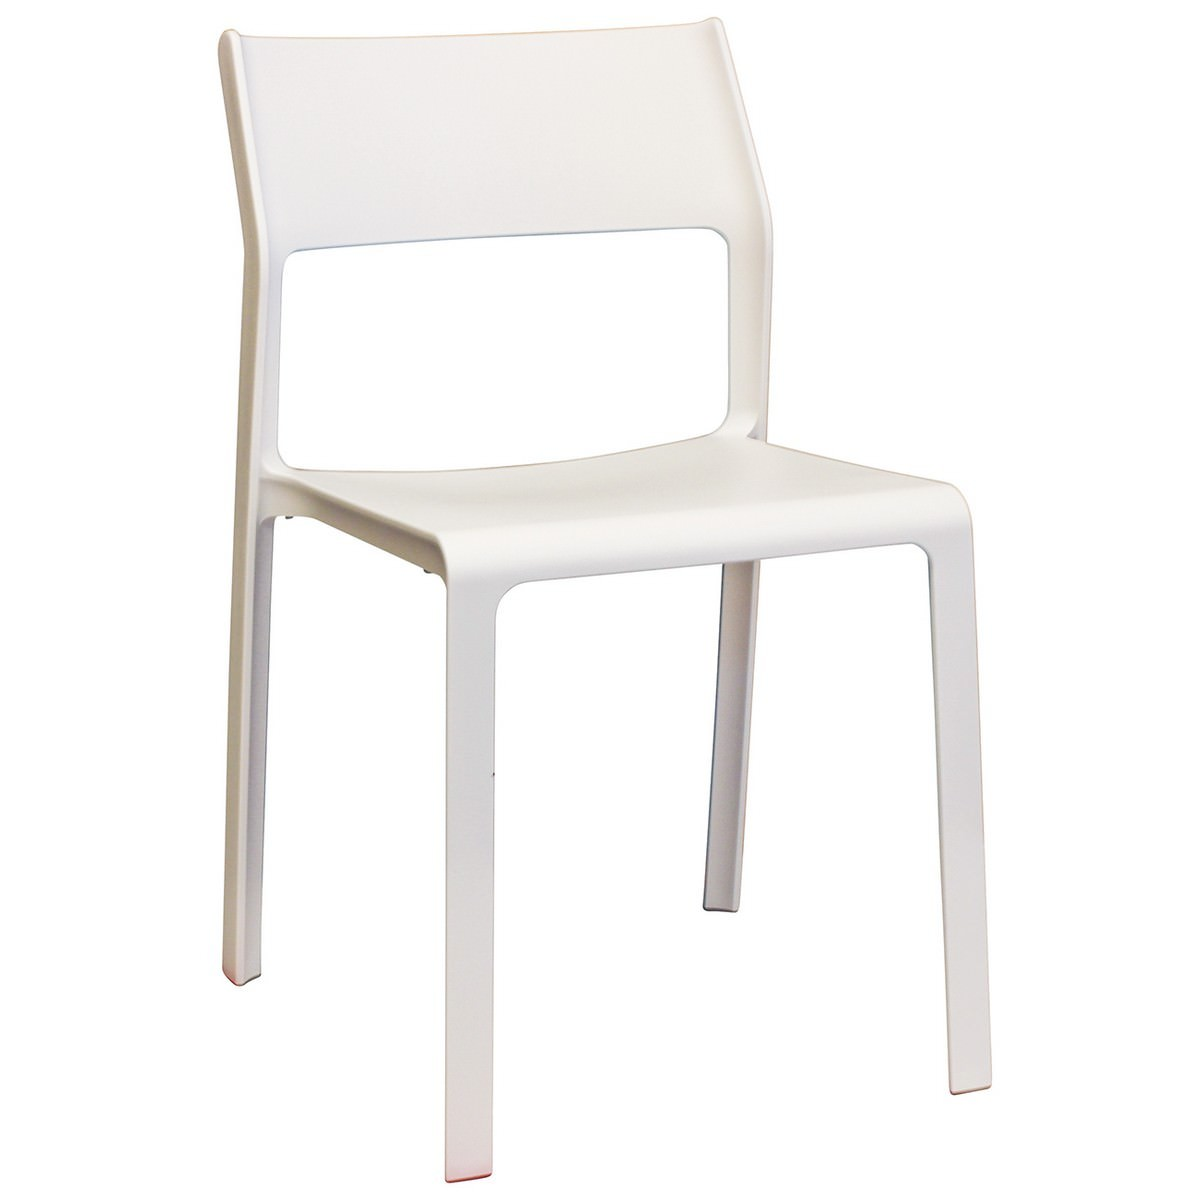 Trill Italian Made Commercial Grade Indoor / Outdoor Dining Chair, White